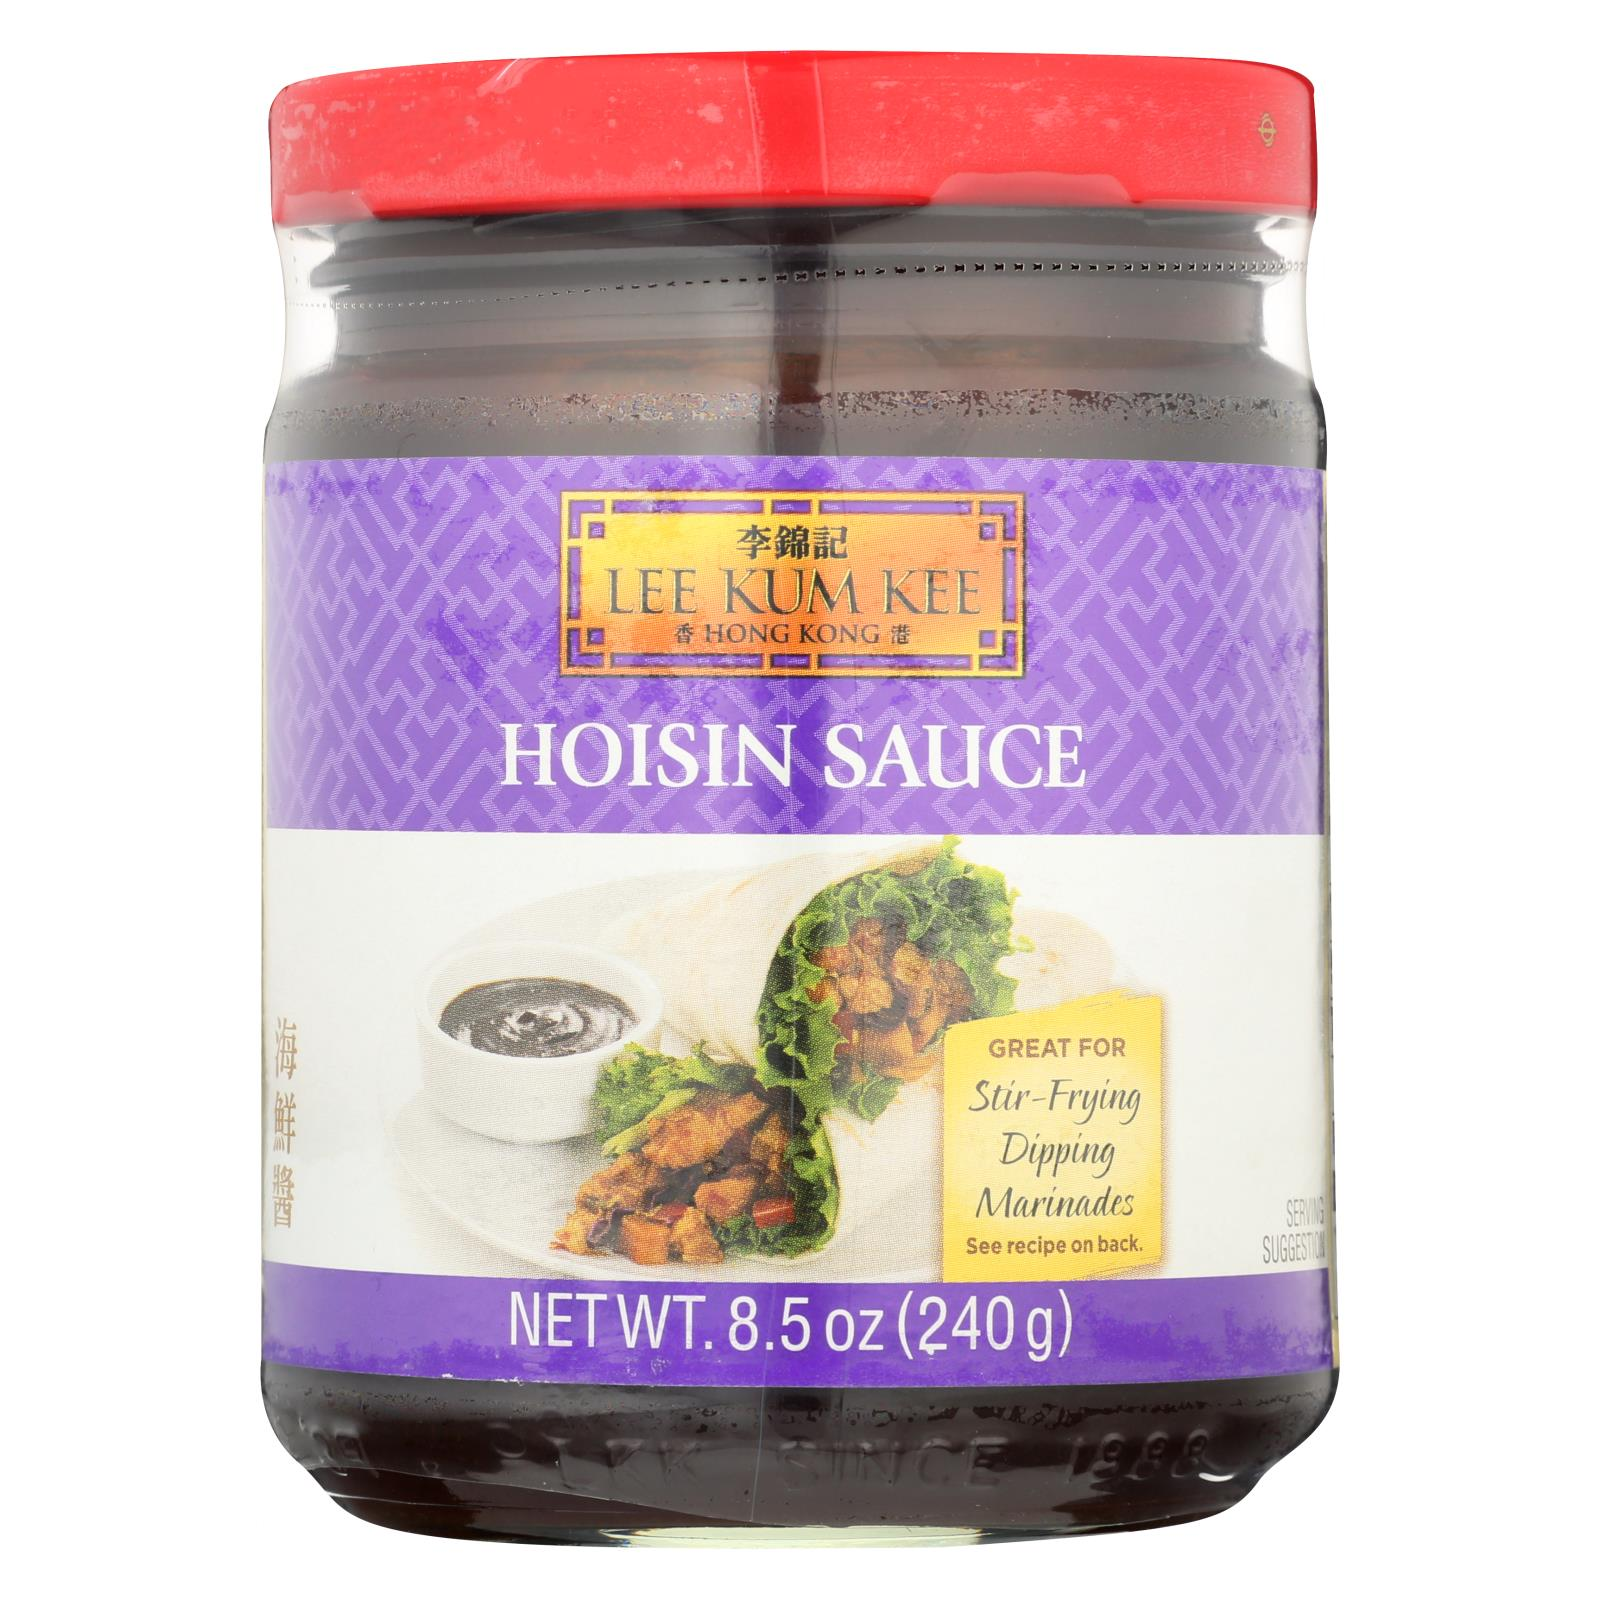 Lee Kum Kee Lee Kum Kee Hoisin Sauce - Hoisin - Case Of 6 - 8.5 Oz. HG0108126